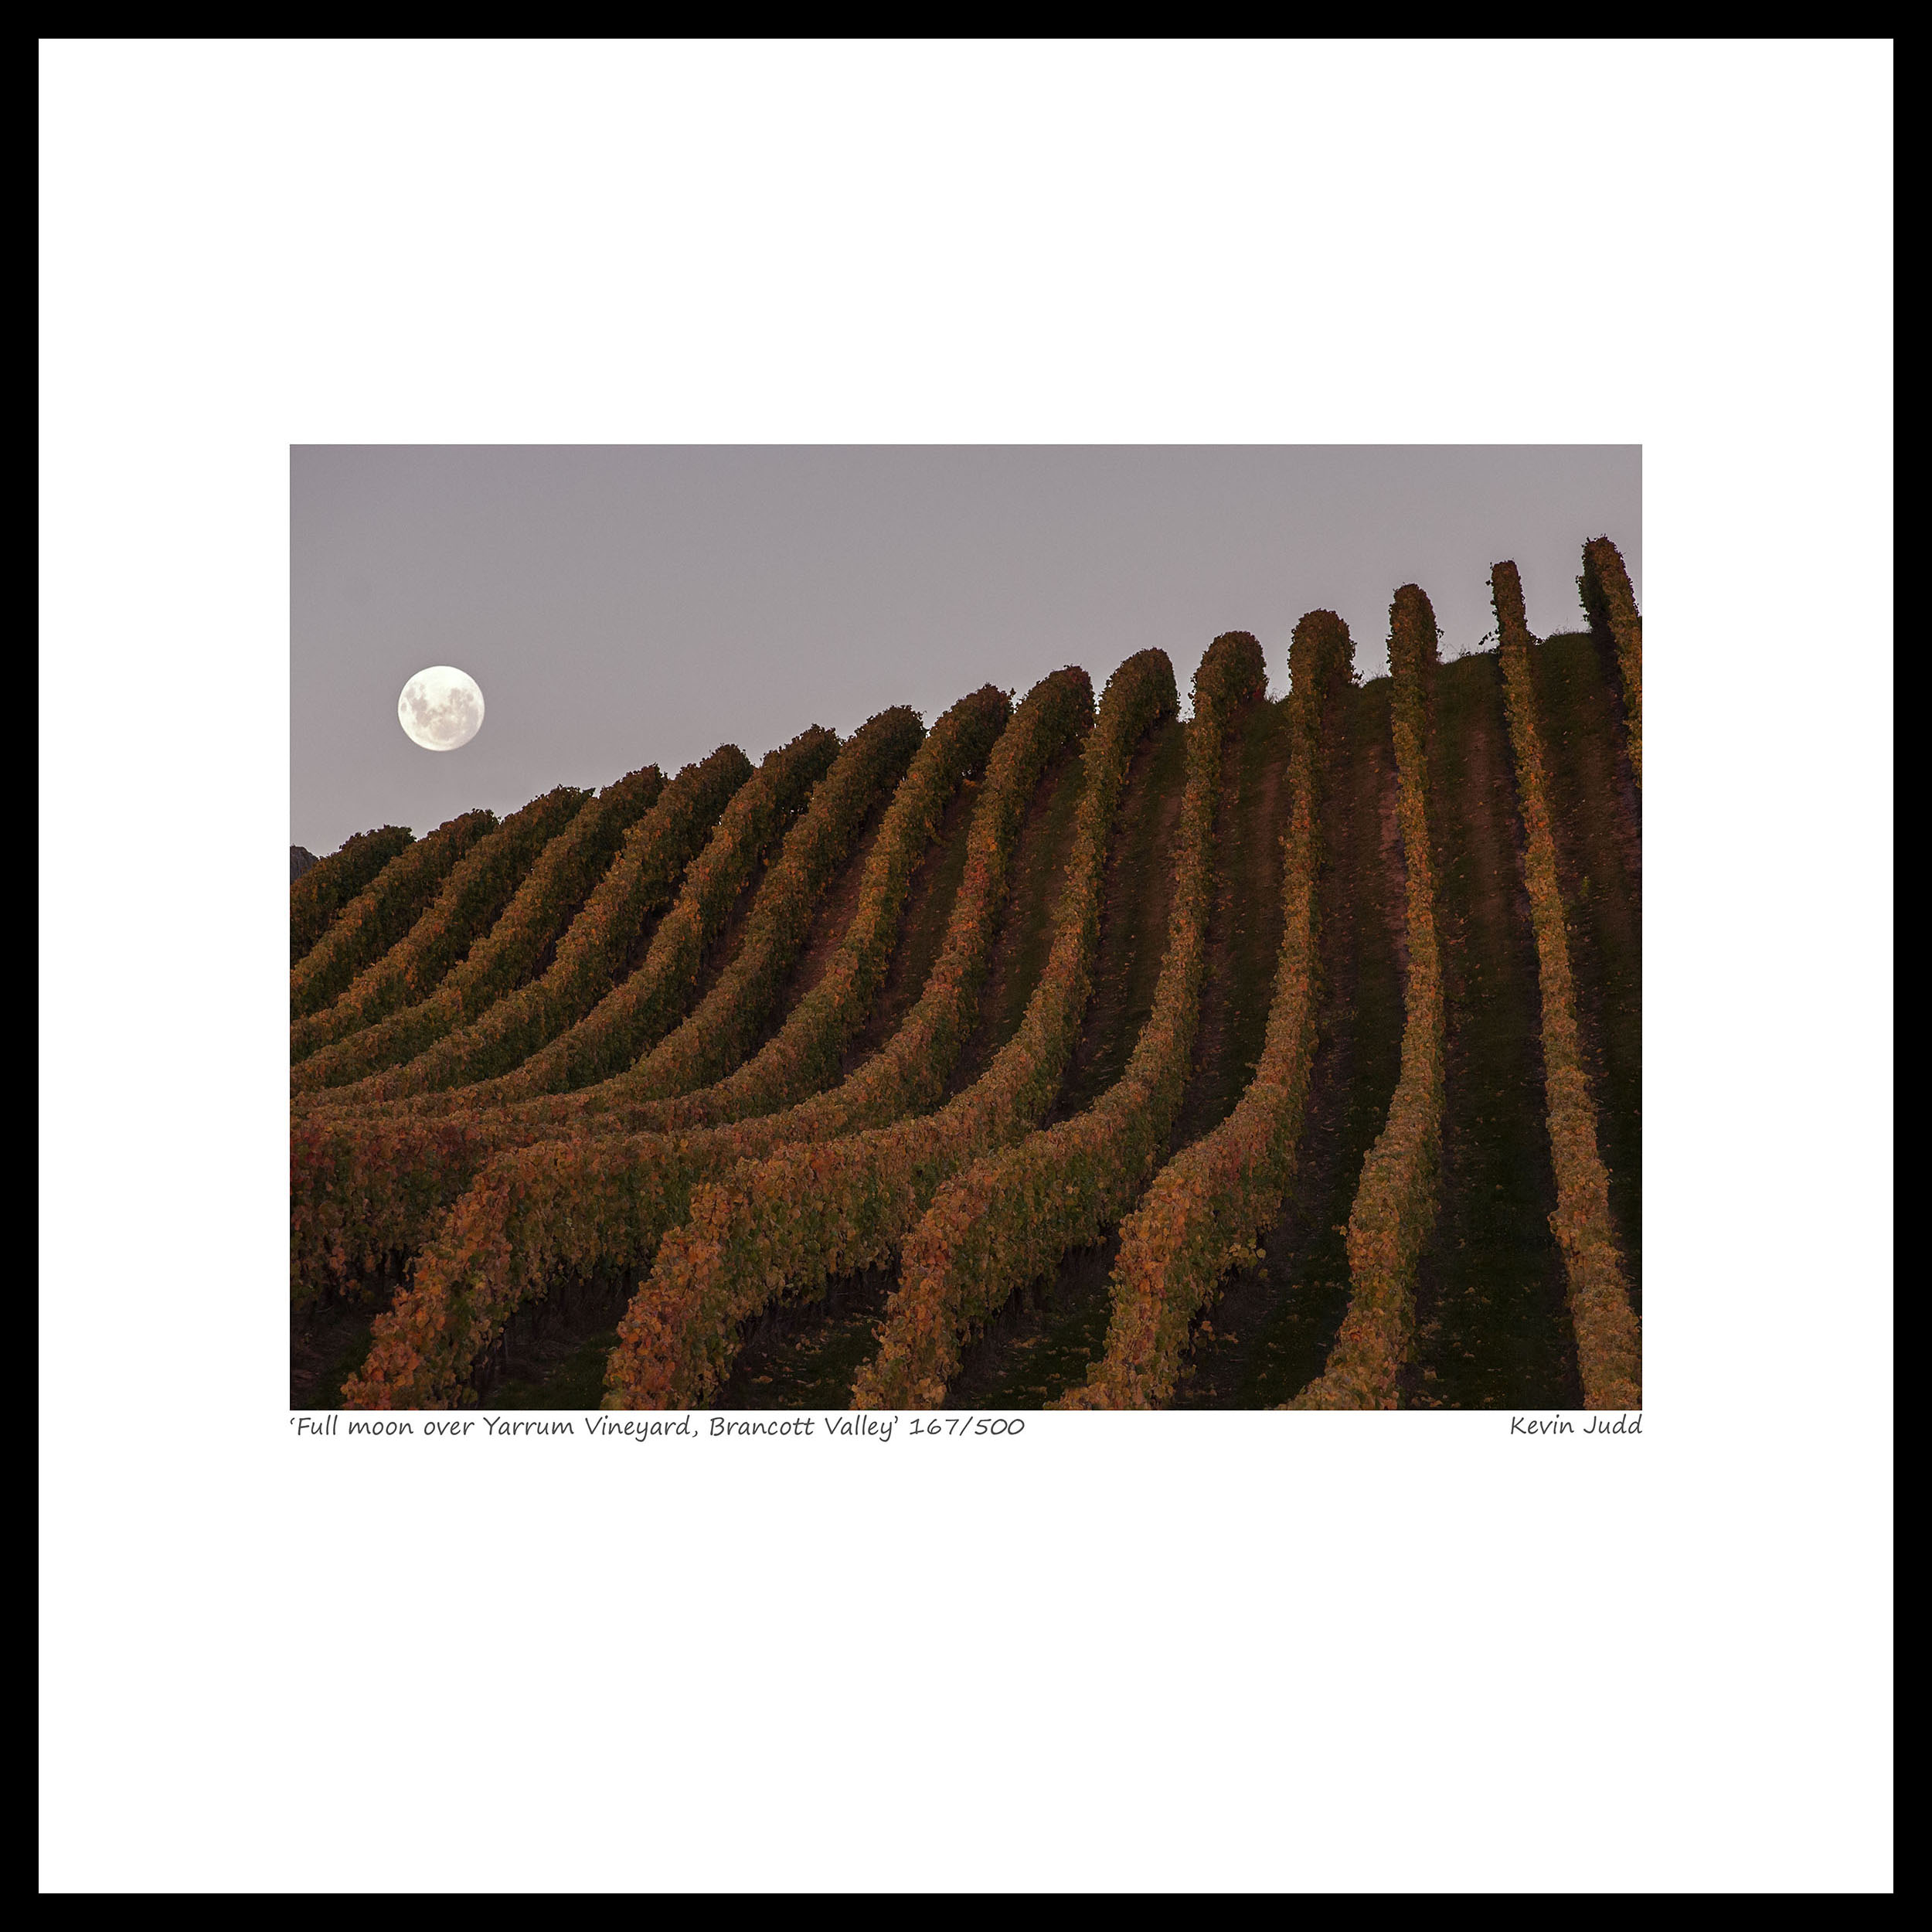 002 Full moon over Yarrum Vineyard